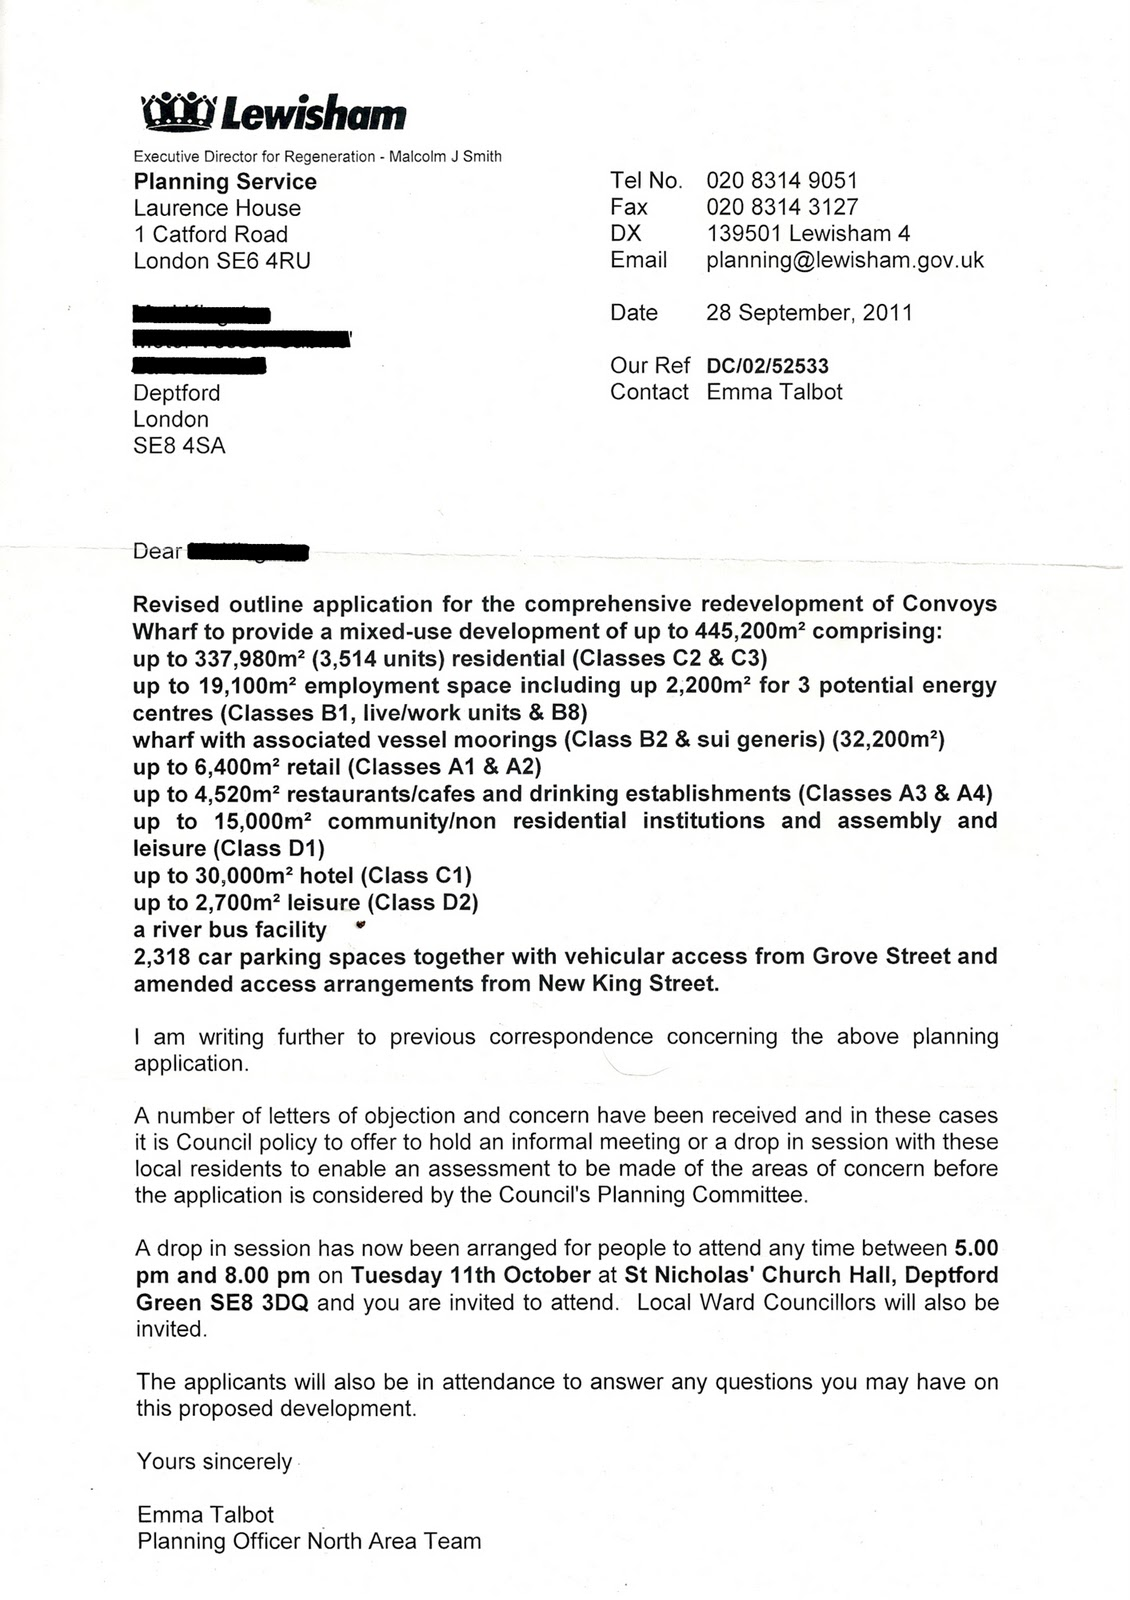 retrenchment letter template - retrenchment letter format image collections letter